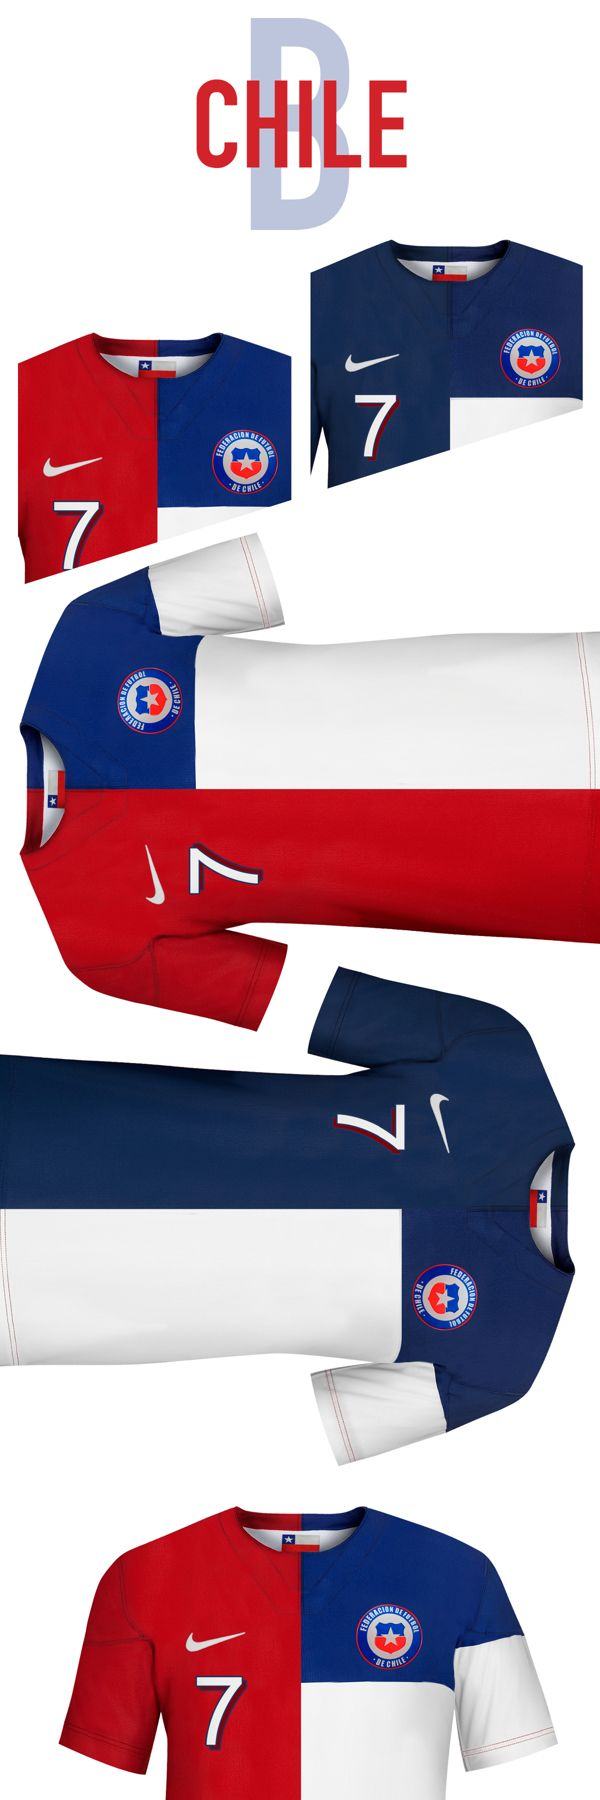 Chile. World Cup. Group B. Concepts on Behance